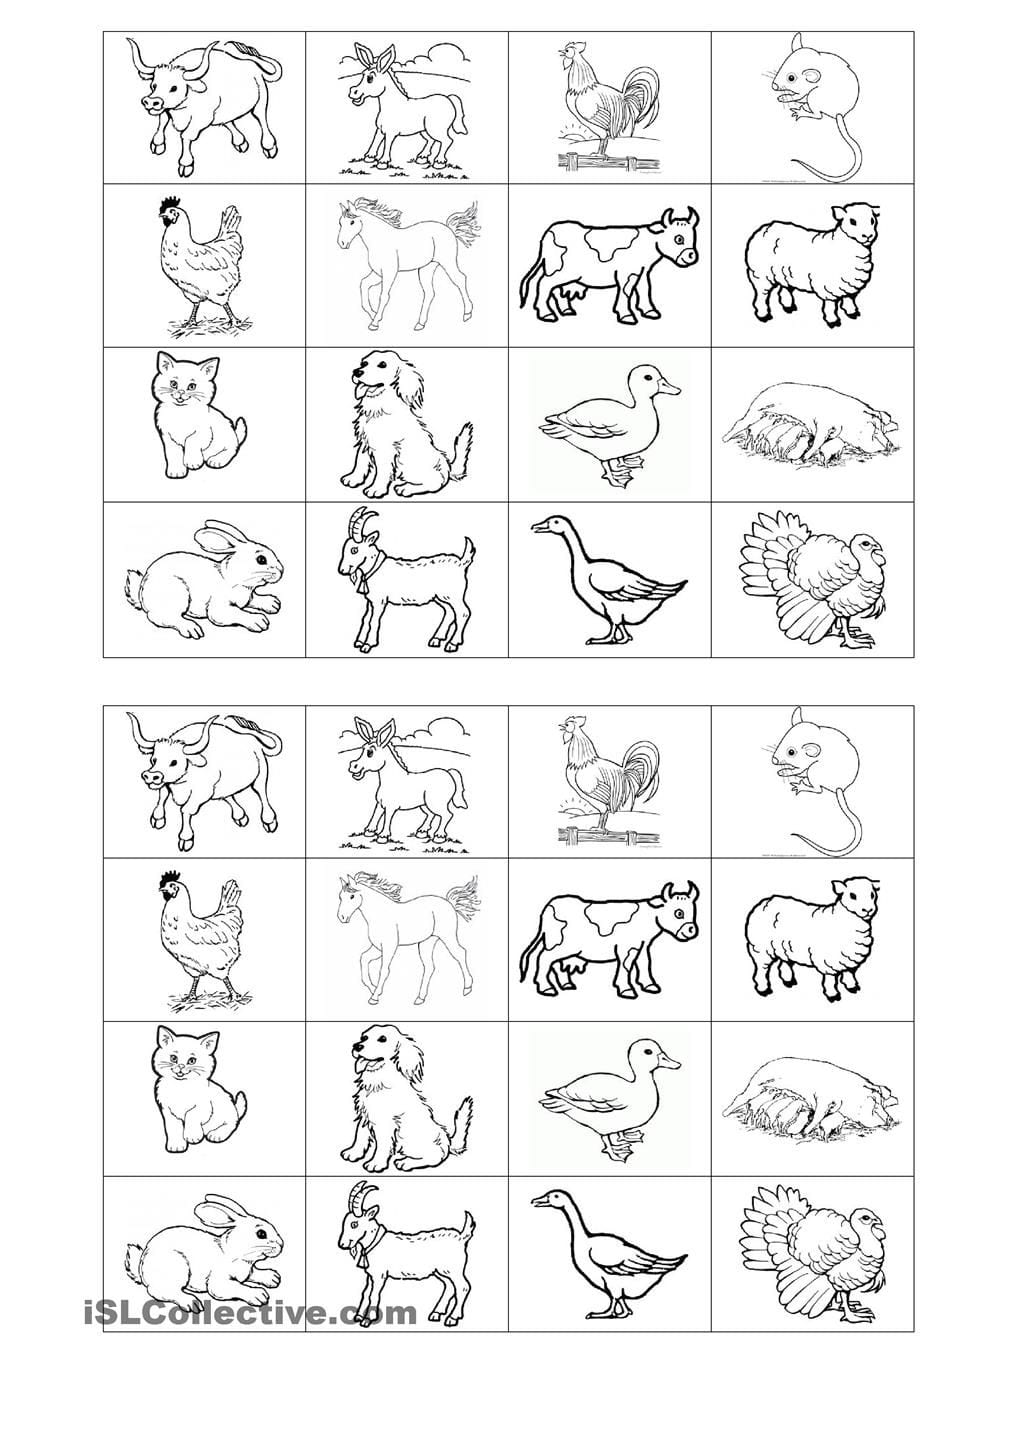 Memory Game On Farm Animals